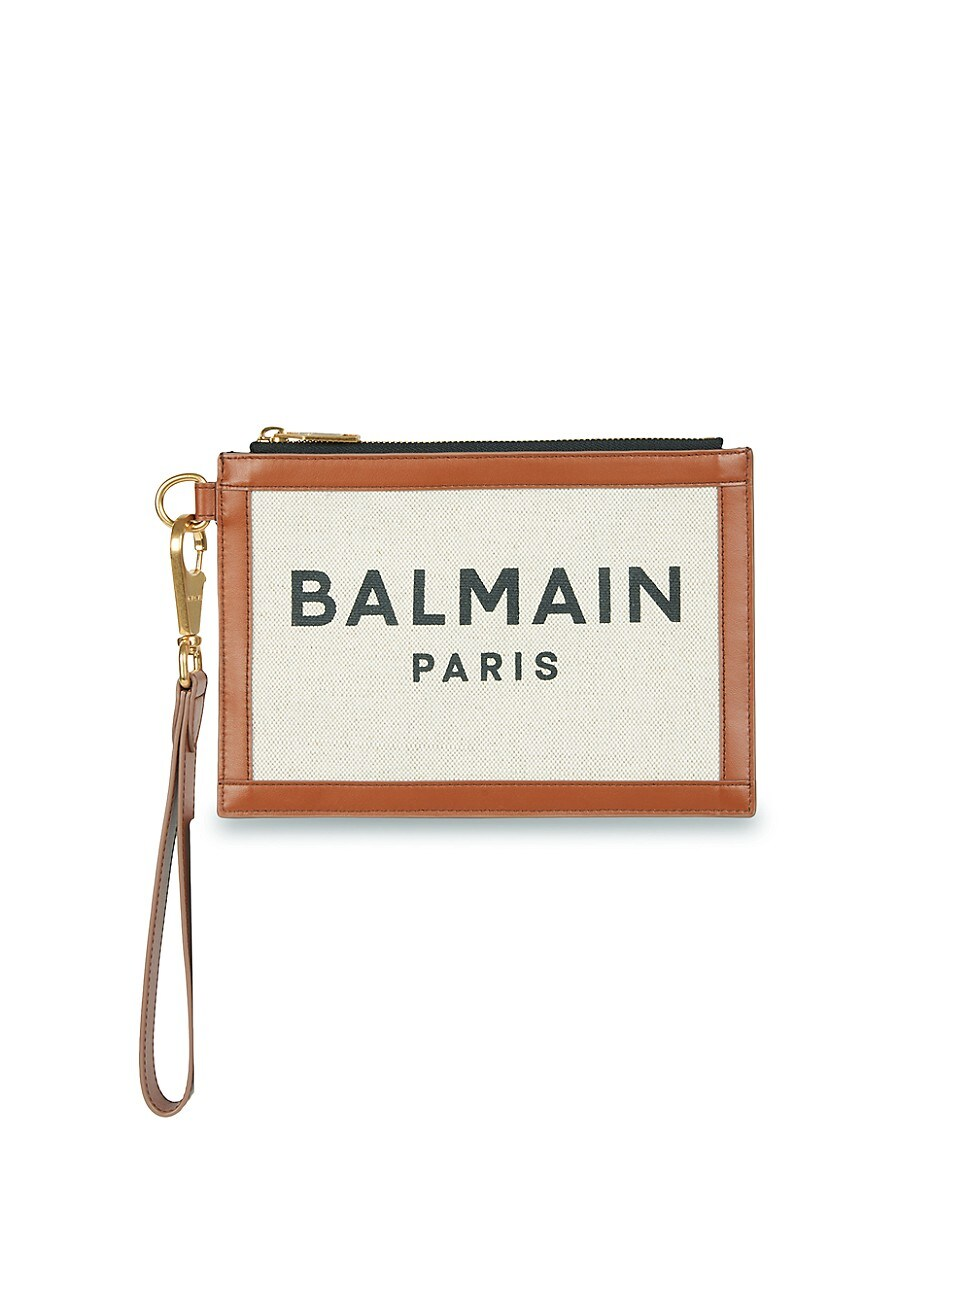 Balmain WOMEN'S B-ARMY LEATHER-TRIMMED CANVAS POUCH